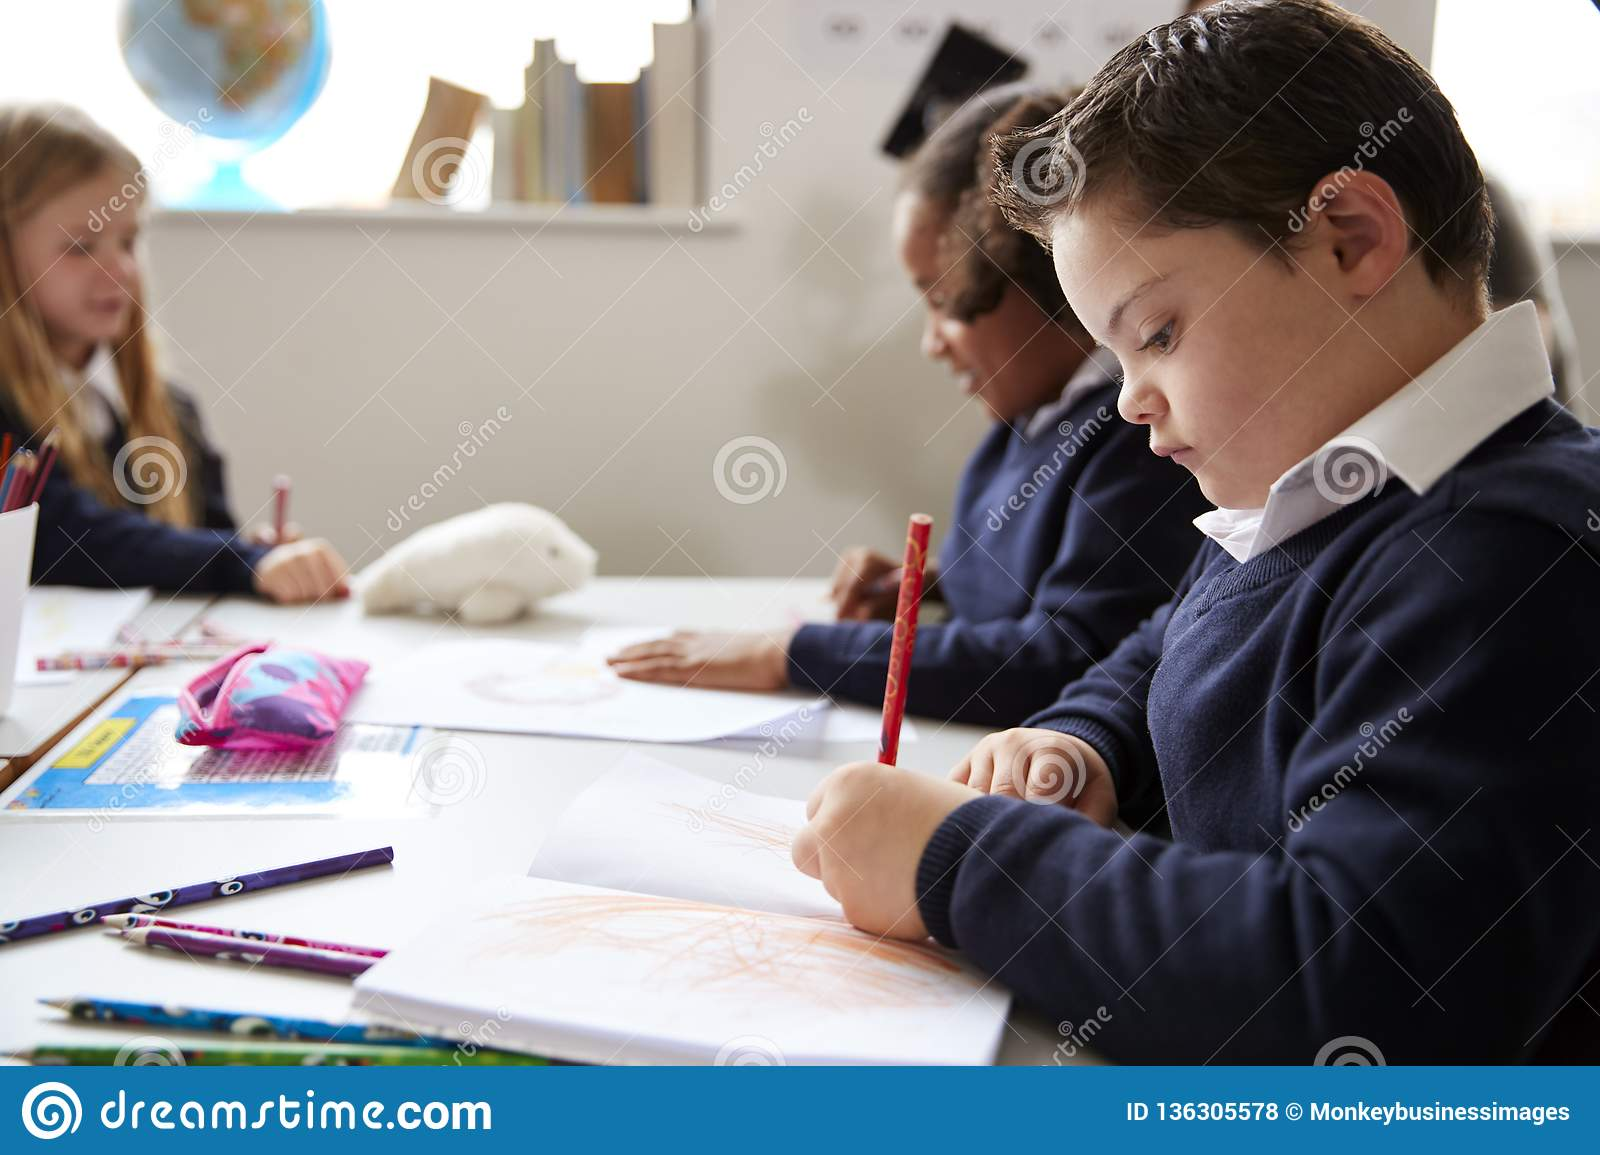 Pre-teen school boy with Down syndrome sitting at a desk writing in a primary school class, close up, side view